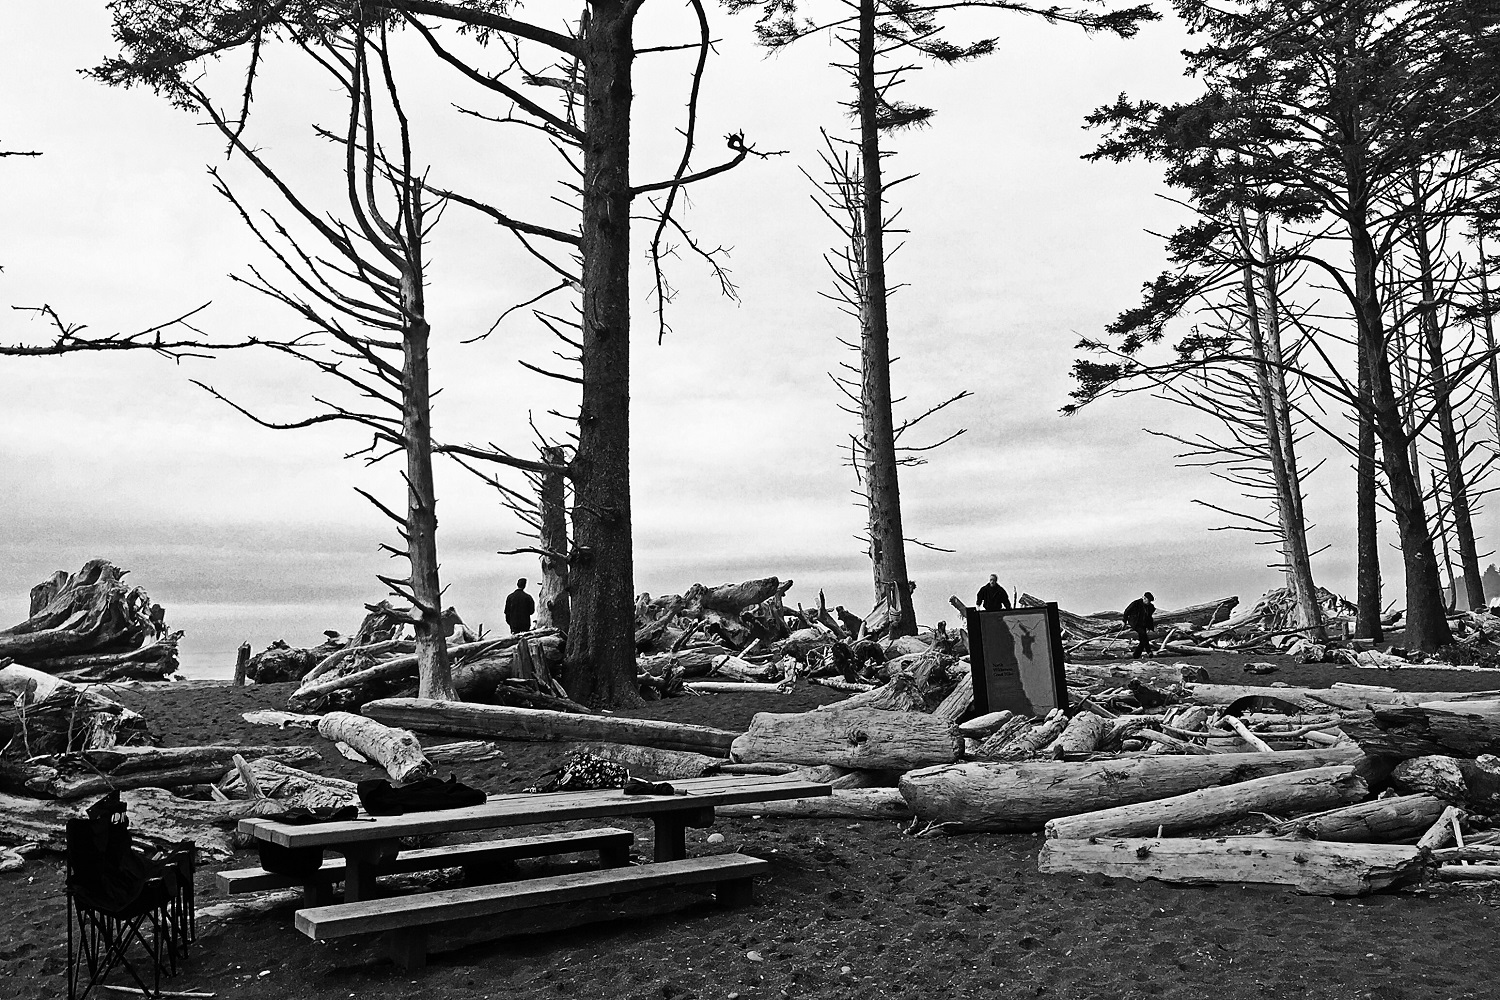 Rialto Beach picnic area, Olympic National Park, WA, USA